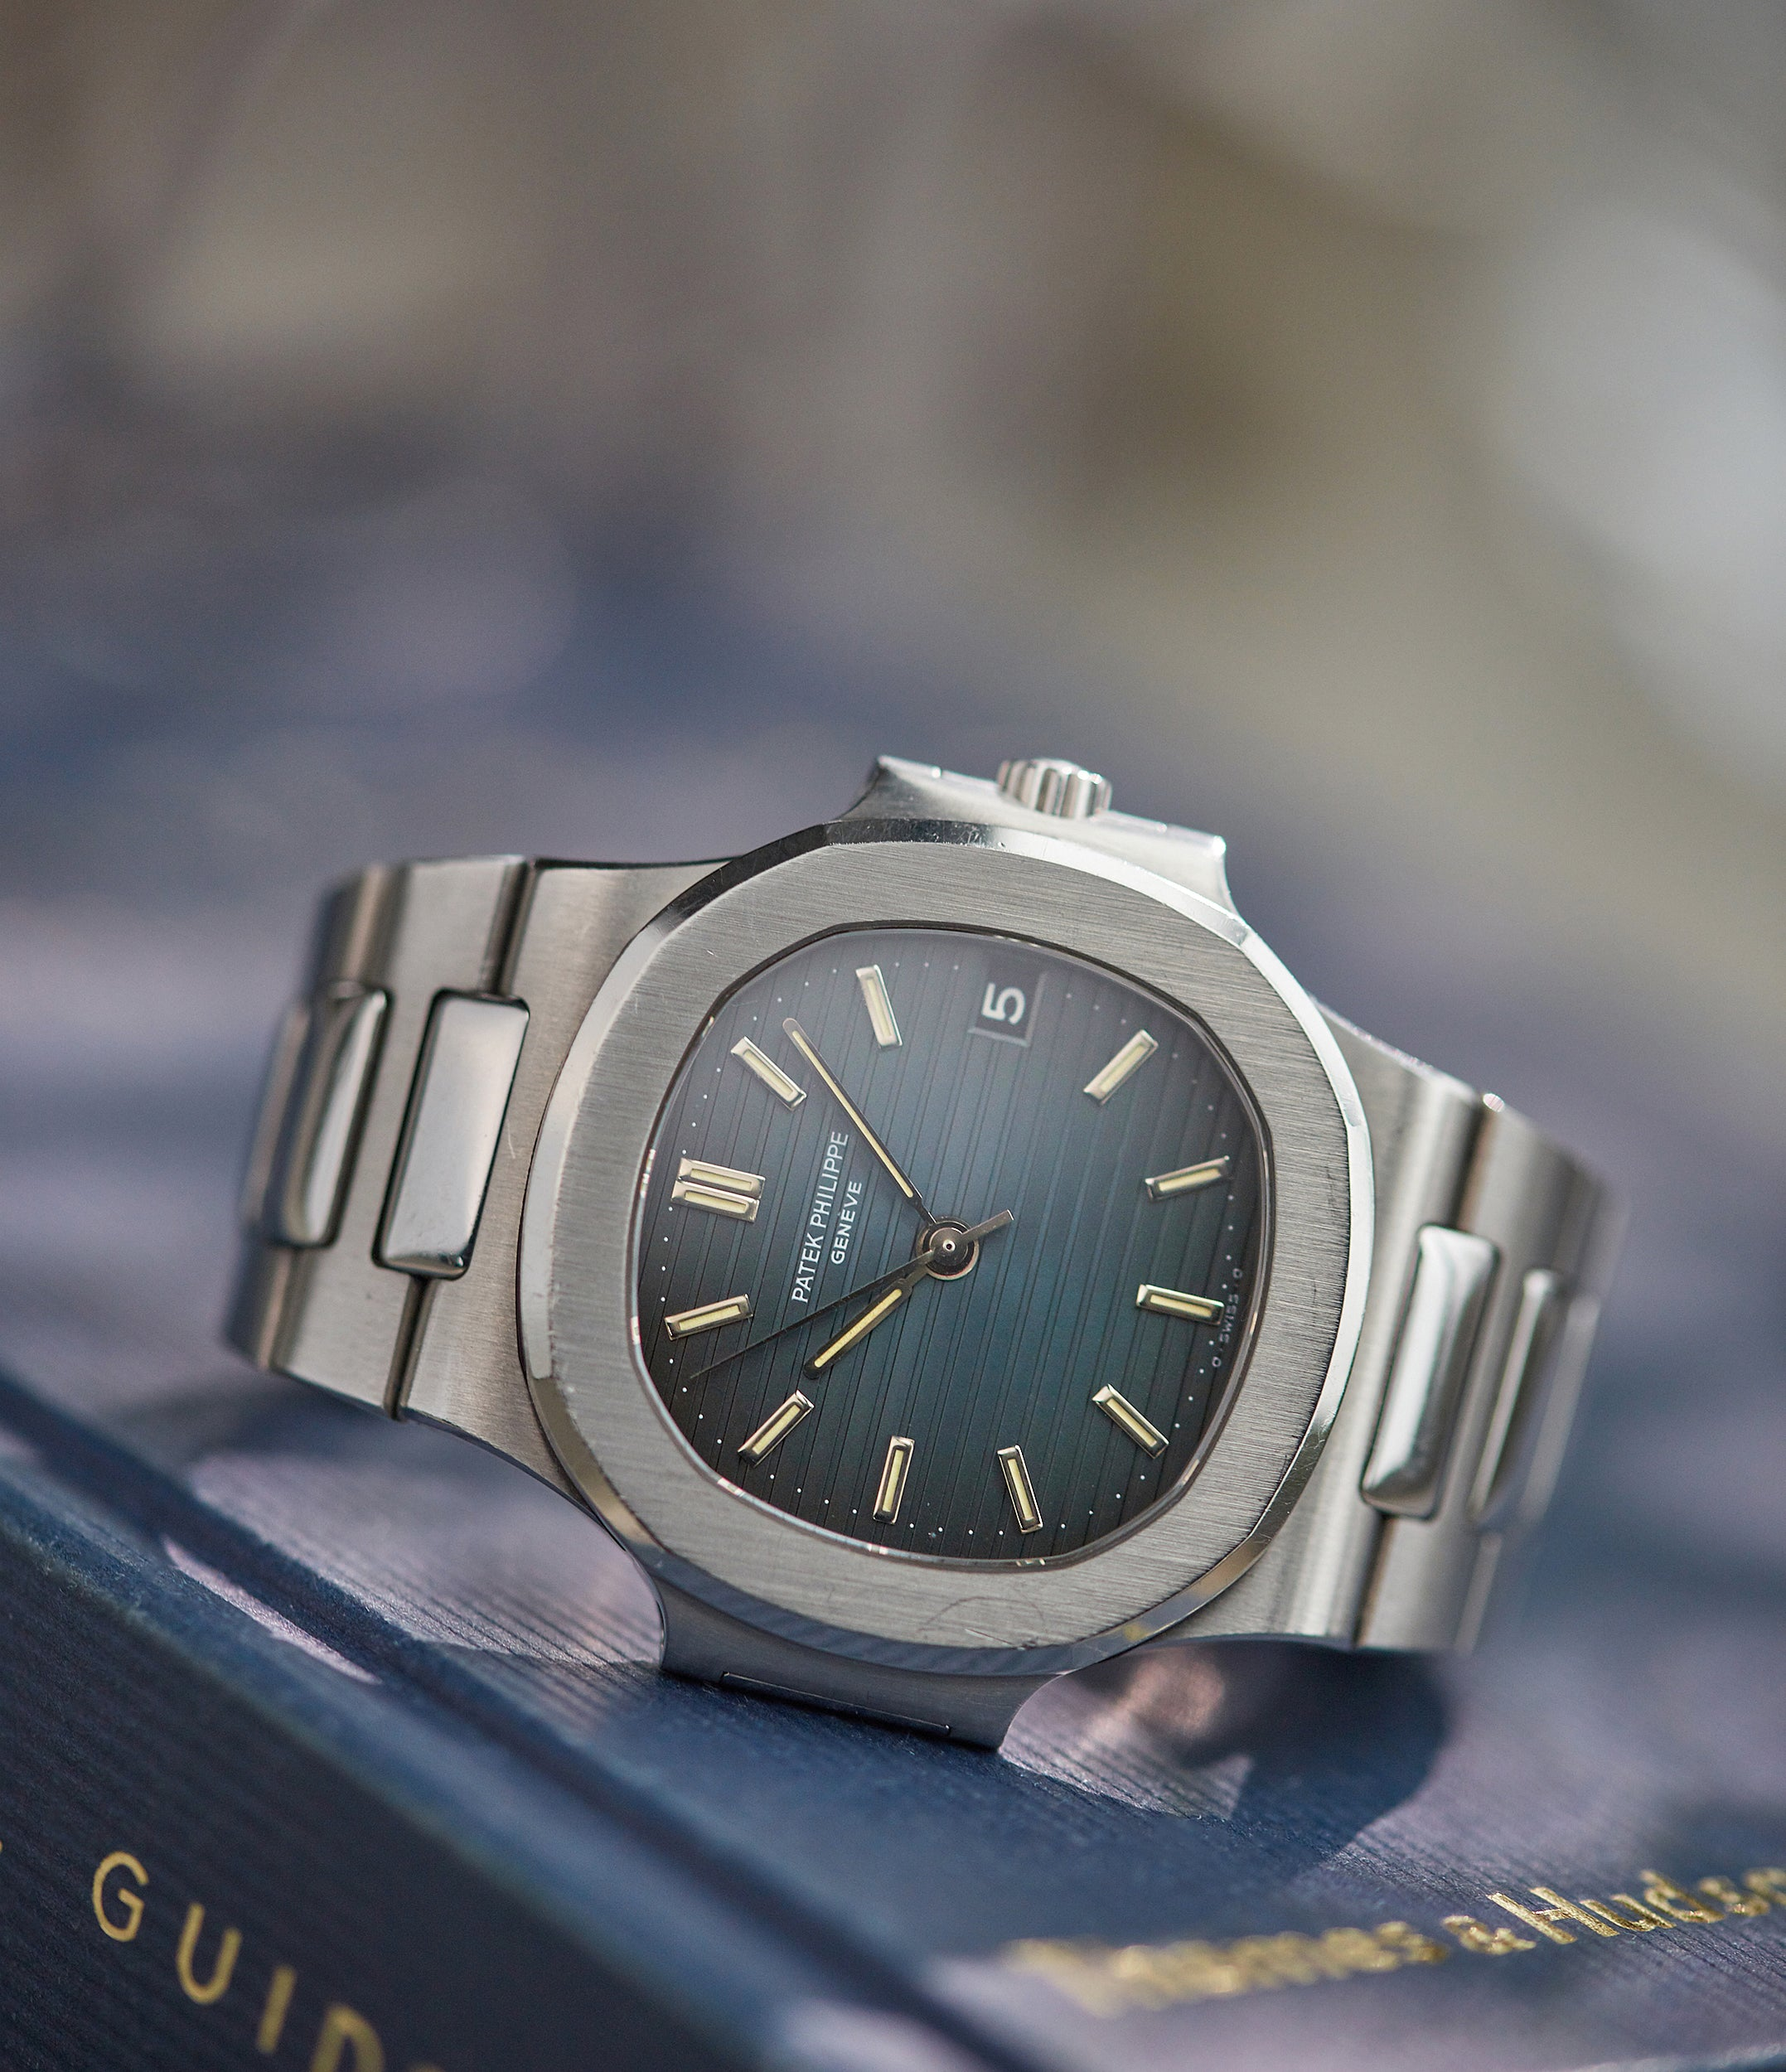 Patek Philippe Nautilus 3800/1A-001 steel vintage sports watch for sale online A Collected Man London  Edit alt text